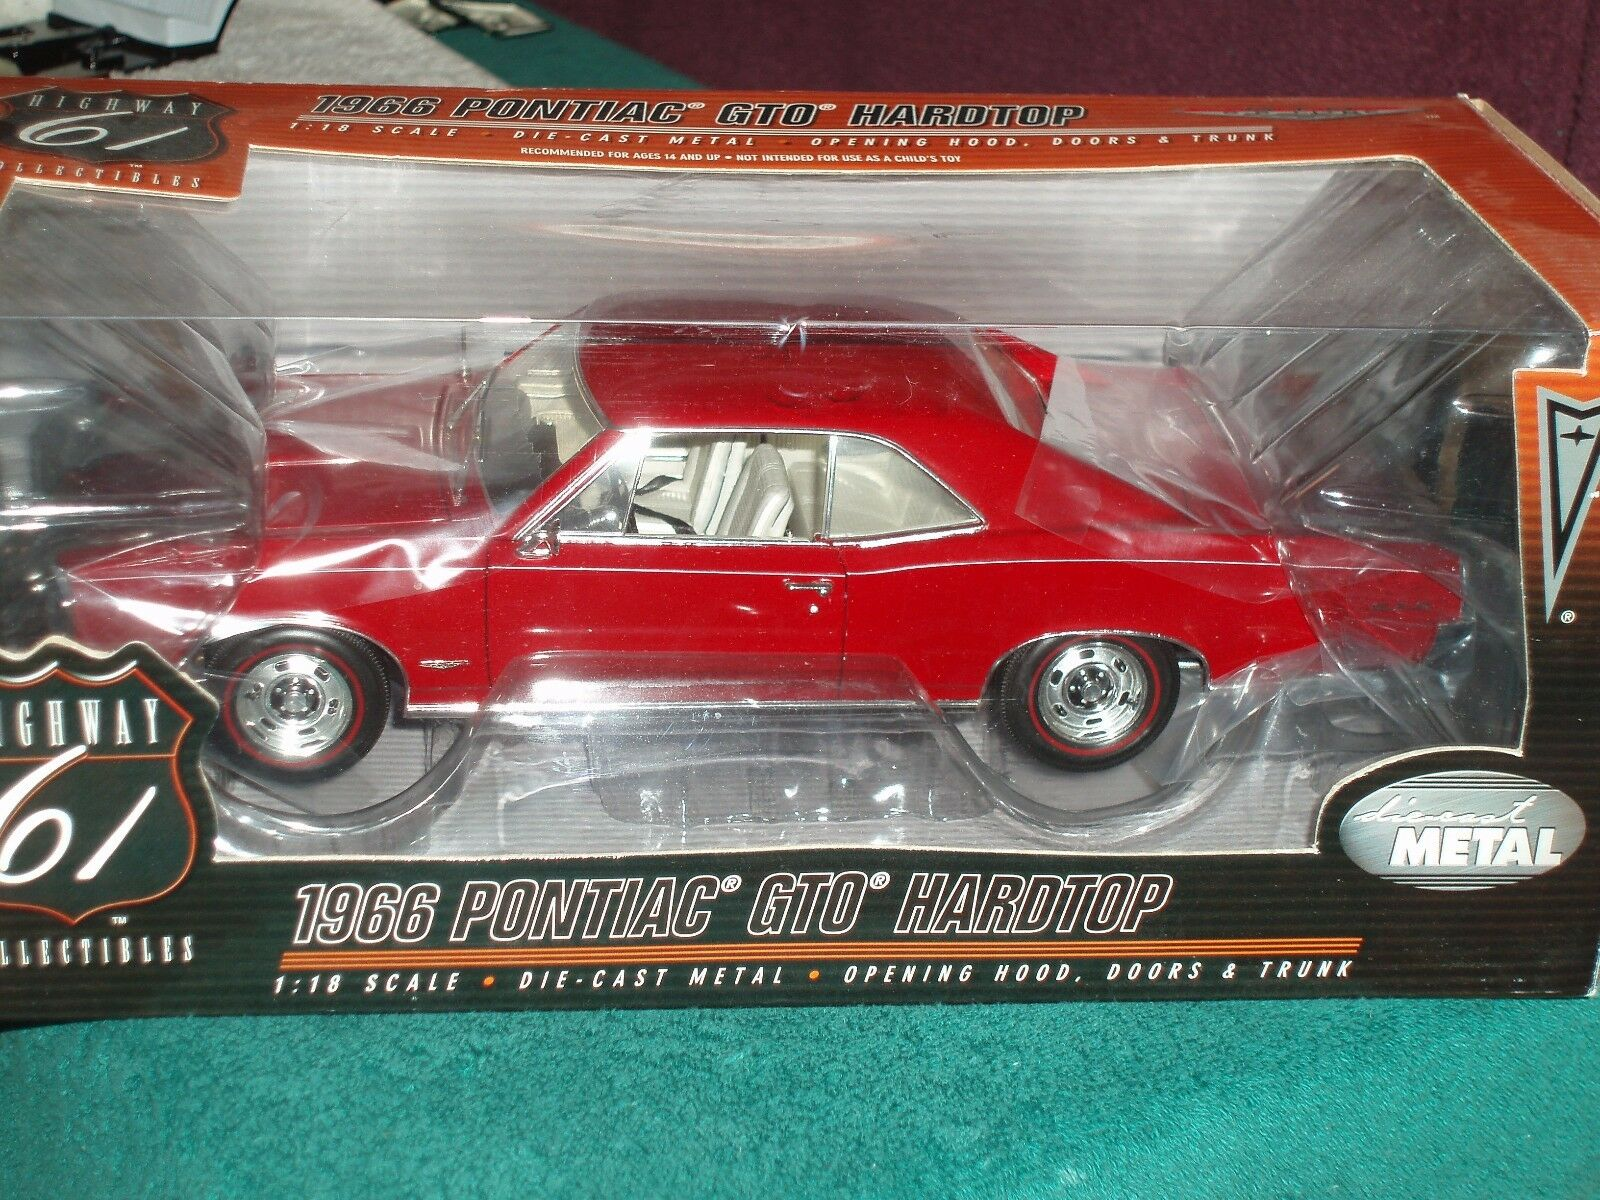 HIGHWAY 61 1966 PONTIAC GTO HARDTOP RED 1/18